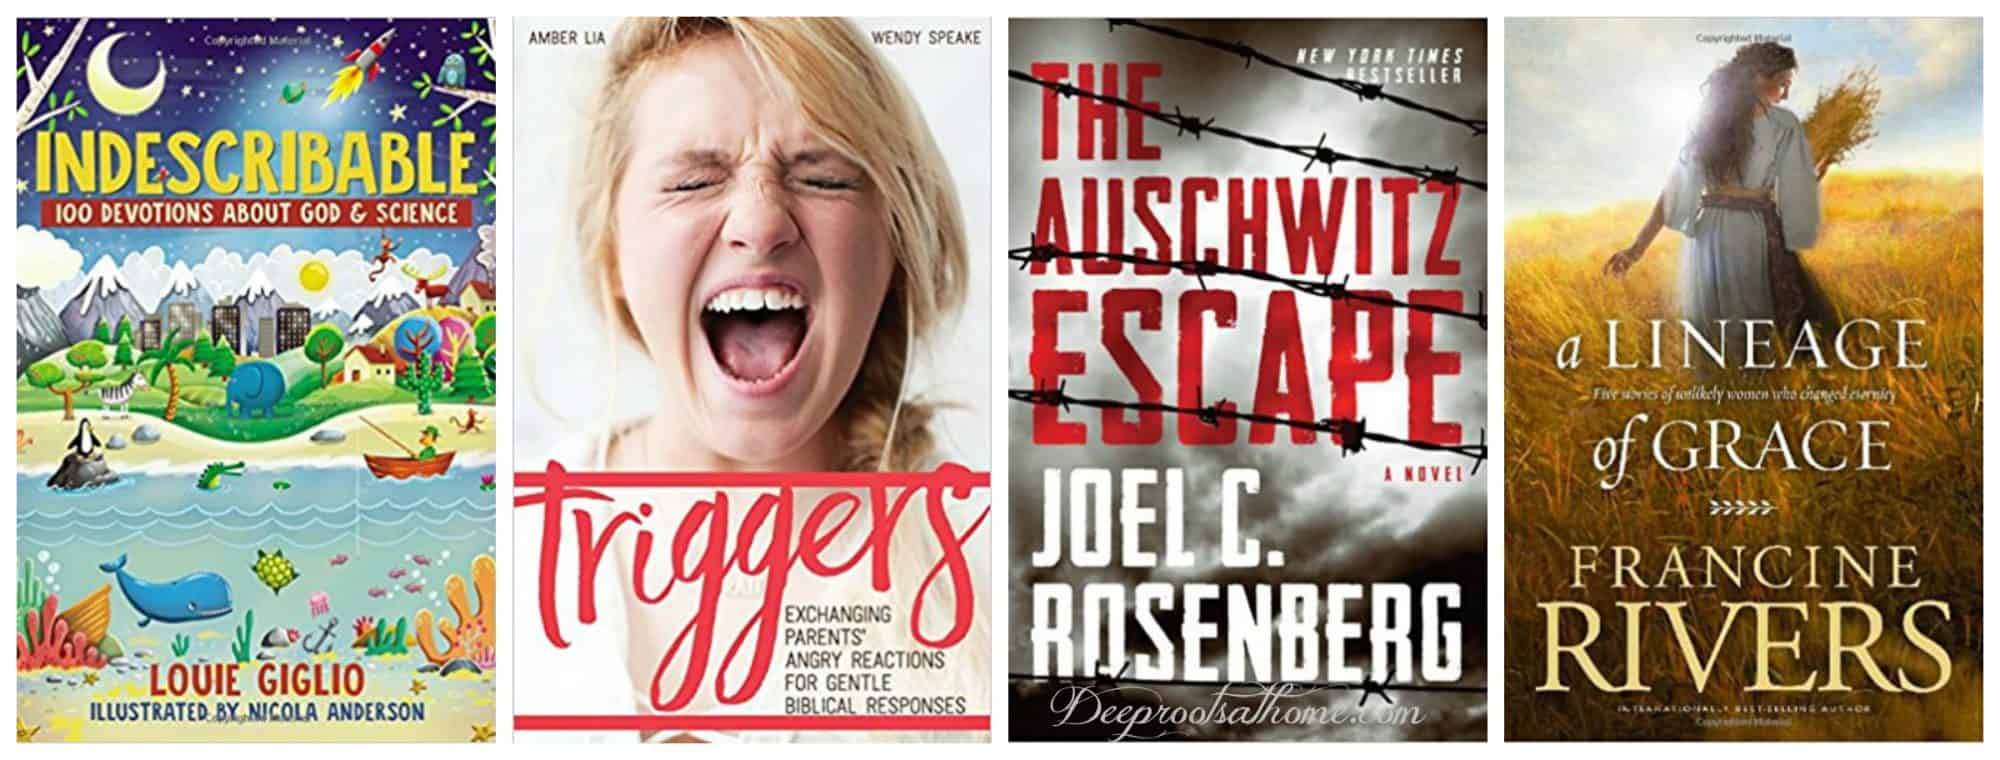 Summer Reading List: New and {Worthy To Be Revisited} Older Books. 4 book covers: The Auschwitz Escape by Joel C. Rosenberg;Indescribable: 100 Devotions for KidsbyLouie Giglio;Triggers, Parents' Angry Reactions, Gentle Biblical Responses byAmber Lia and Lineage of Grace byFrancine Rivers.